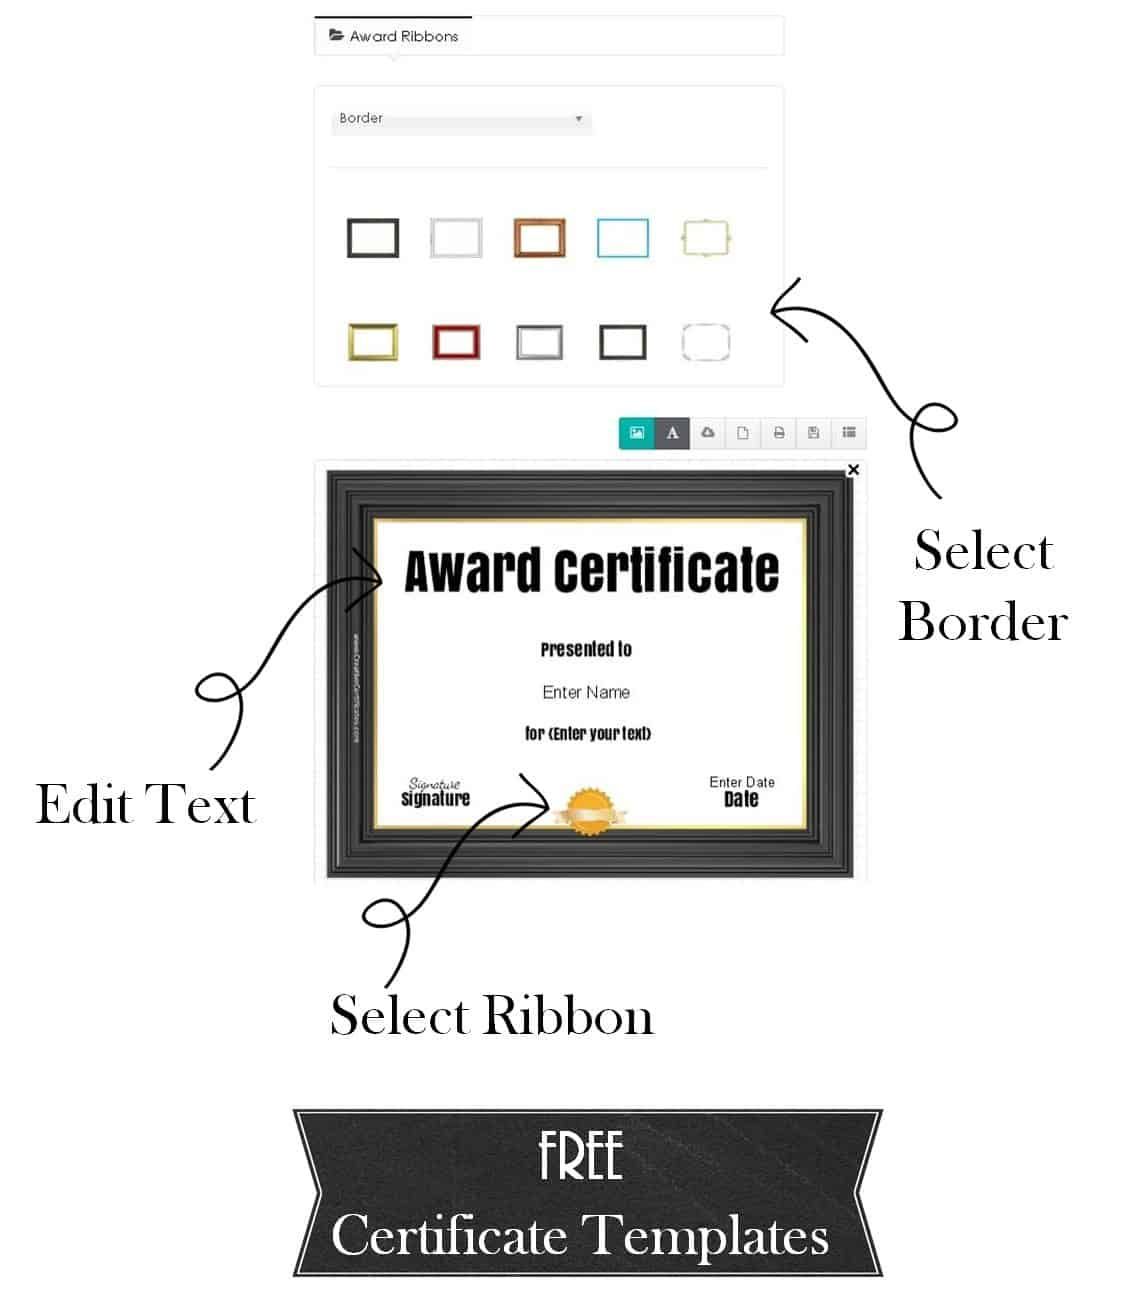 Free Custom Certificate Templates | Instant Download